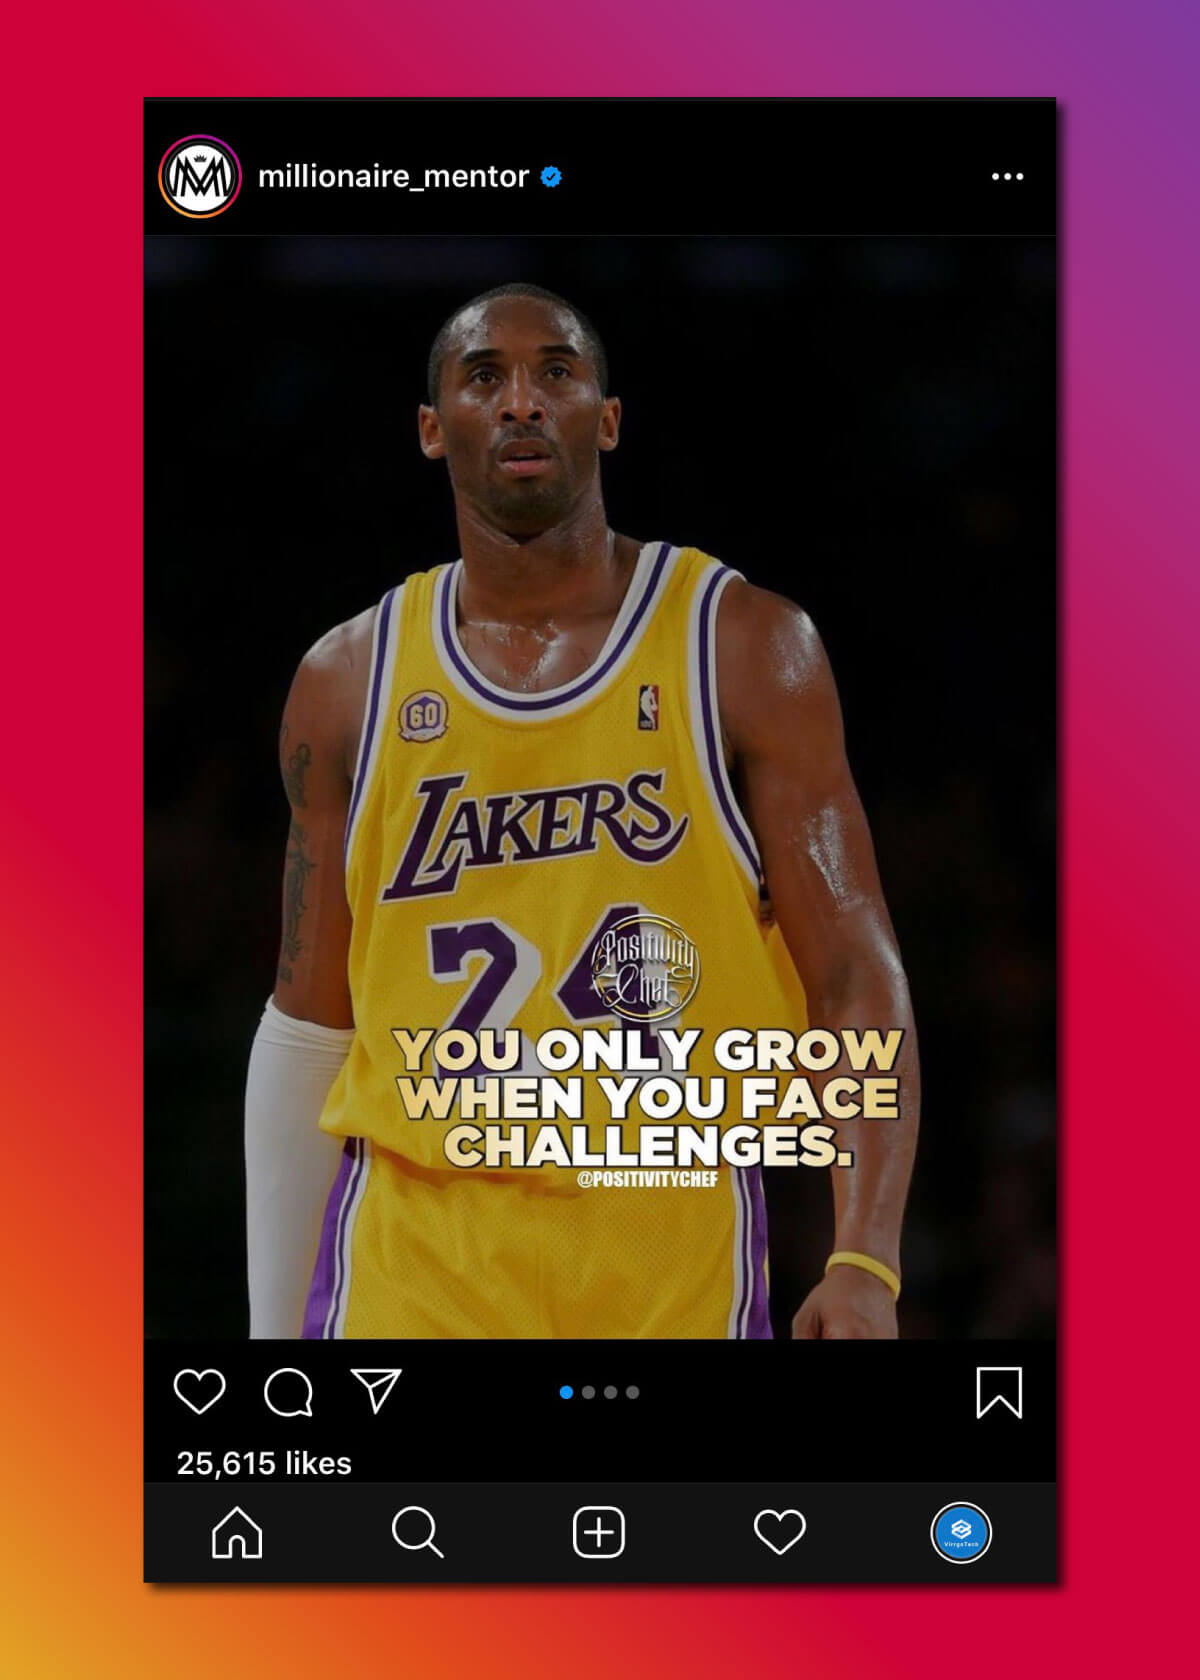 Instagram Marketing Strategy - Motivation Posts